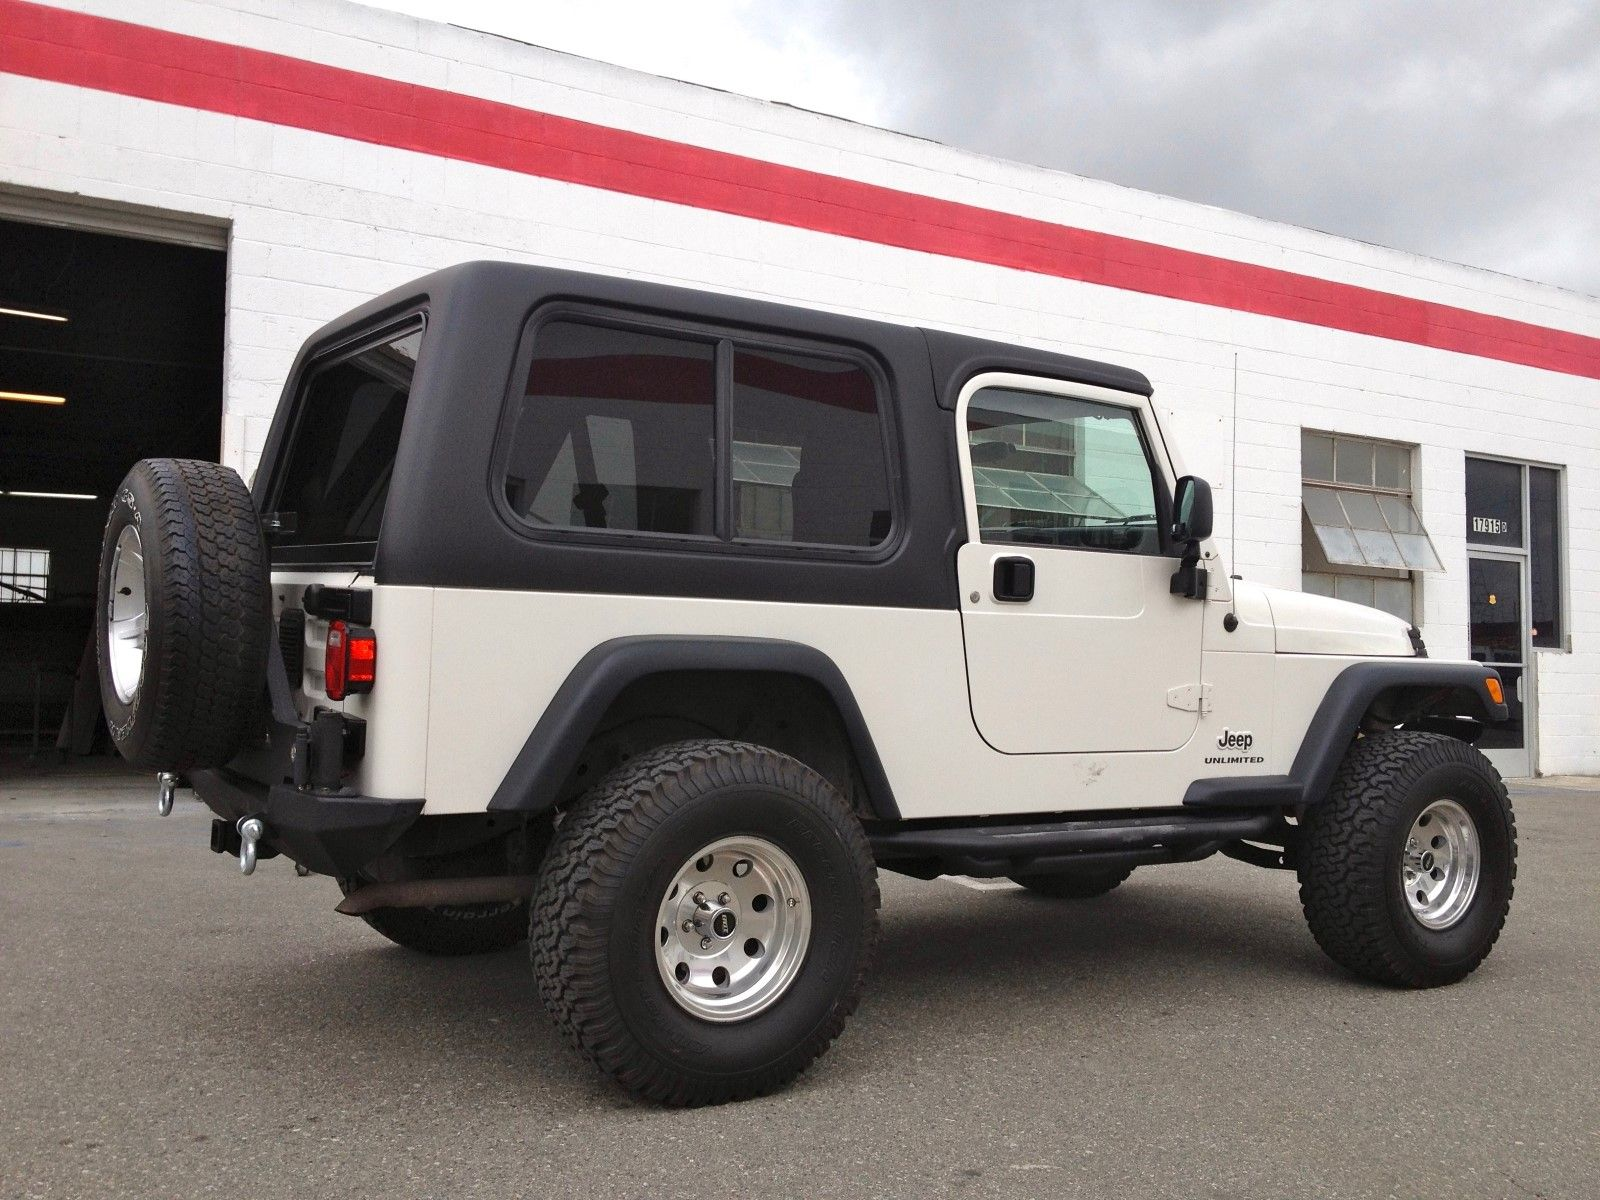 Jeep Wrangler Unlimited Hardtop Lj 2 Piece Removable Top Years